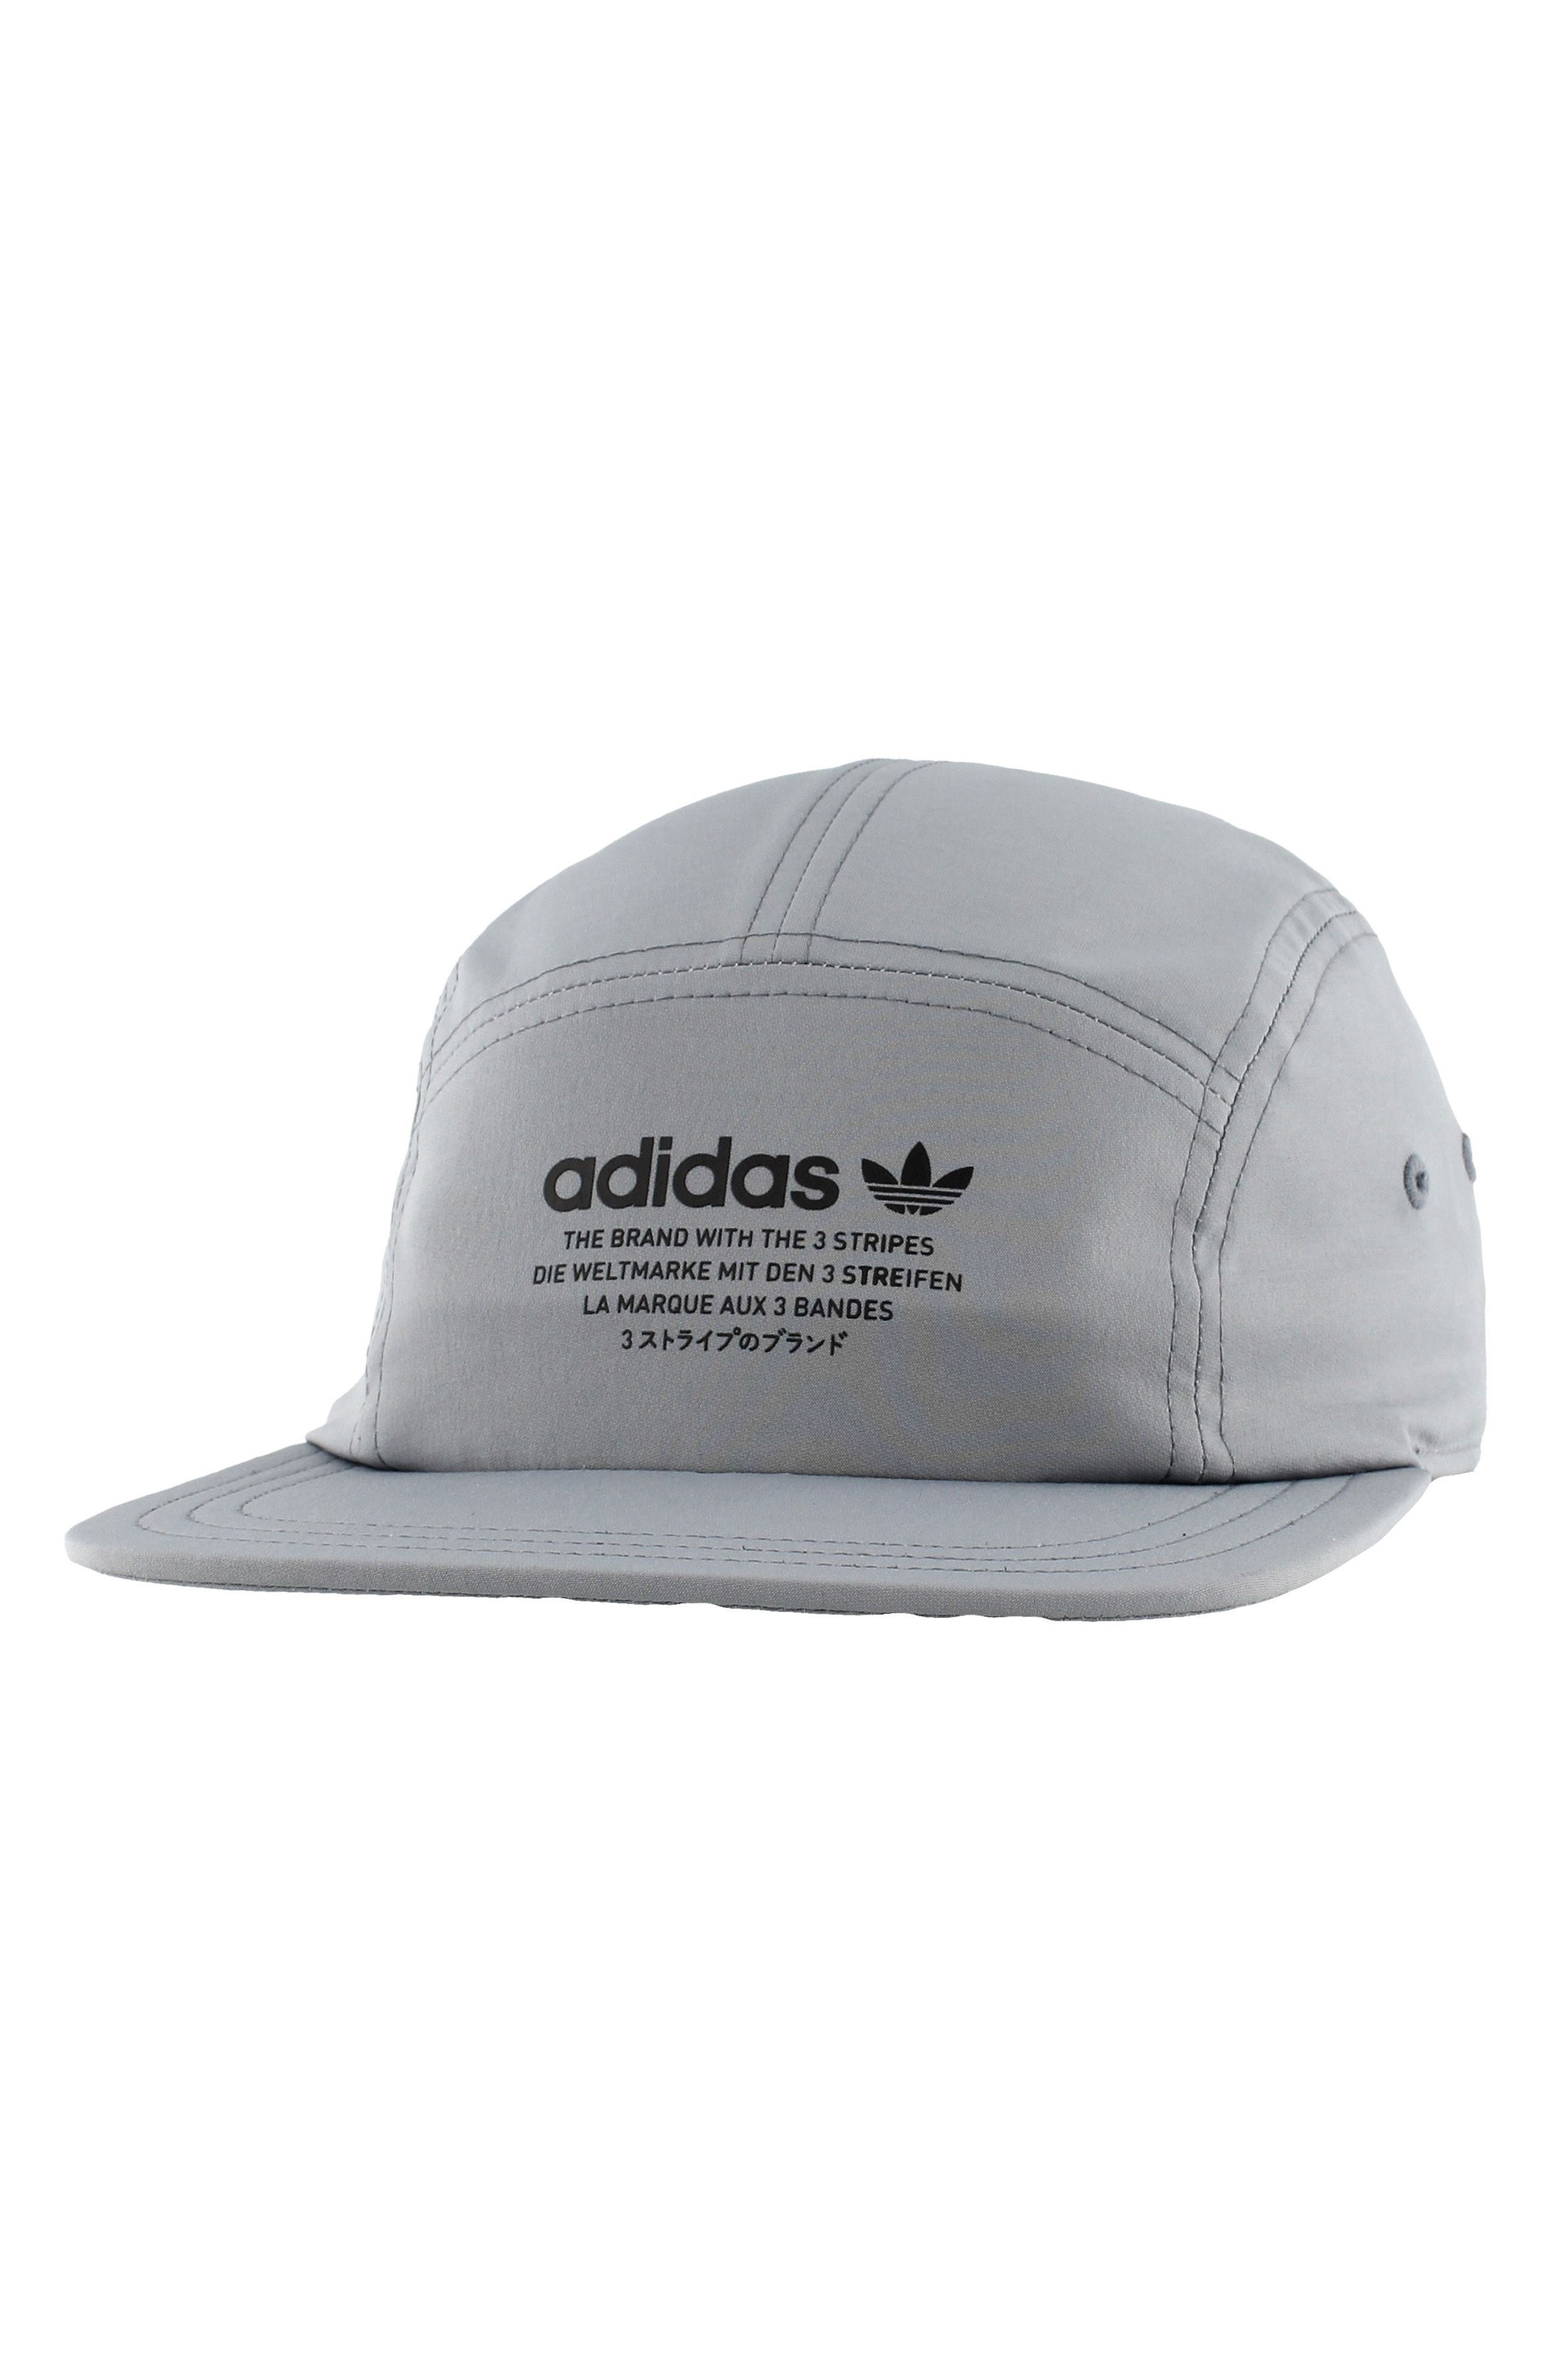 5e7c6622762 ... adidas Originals Nmd Five Panel Cap